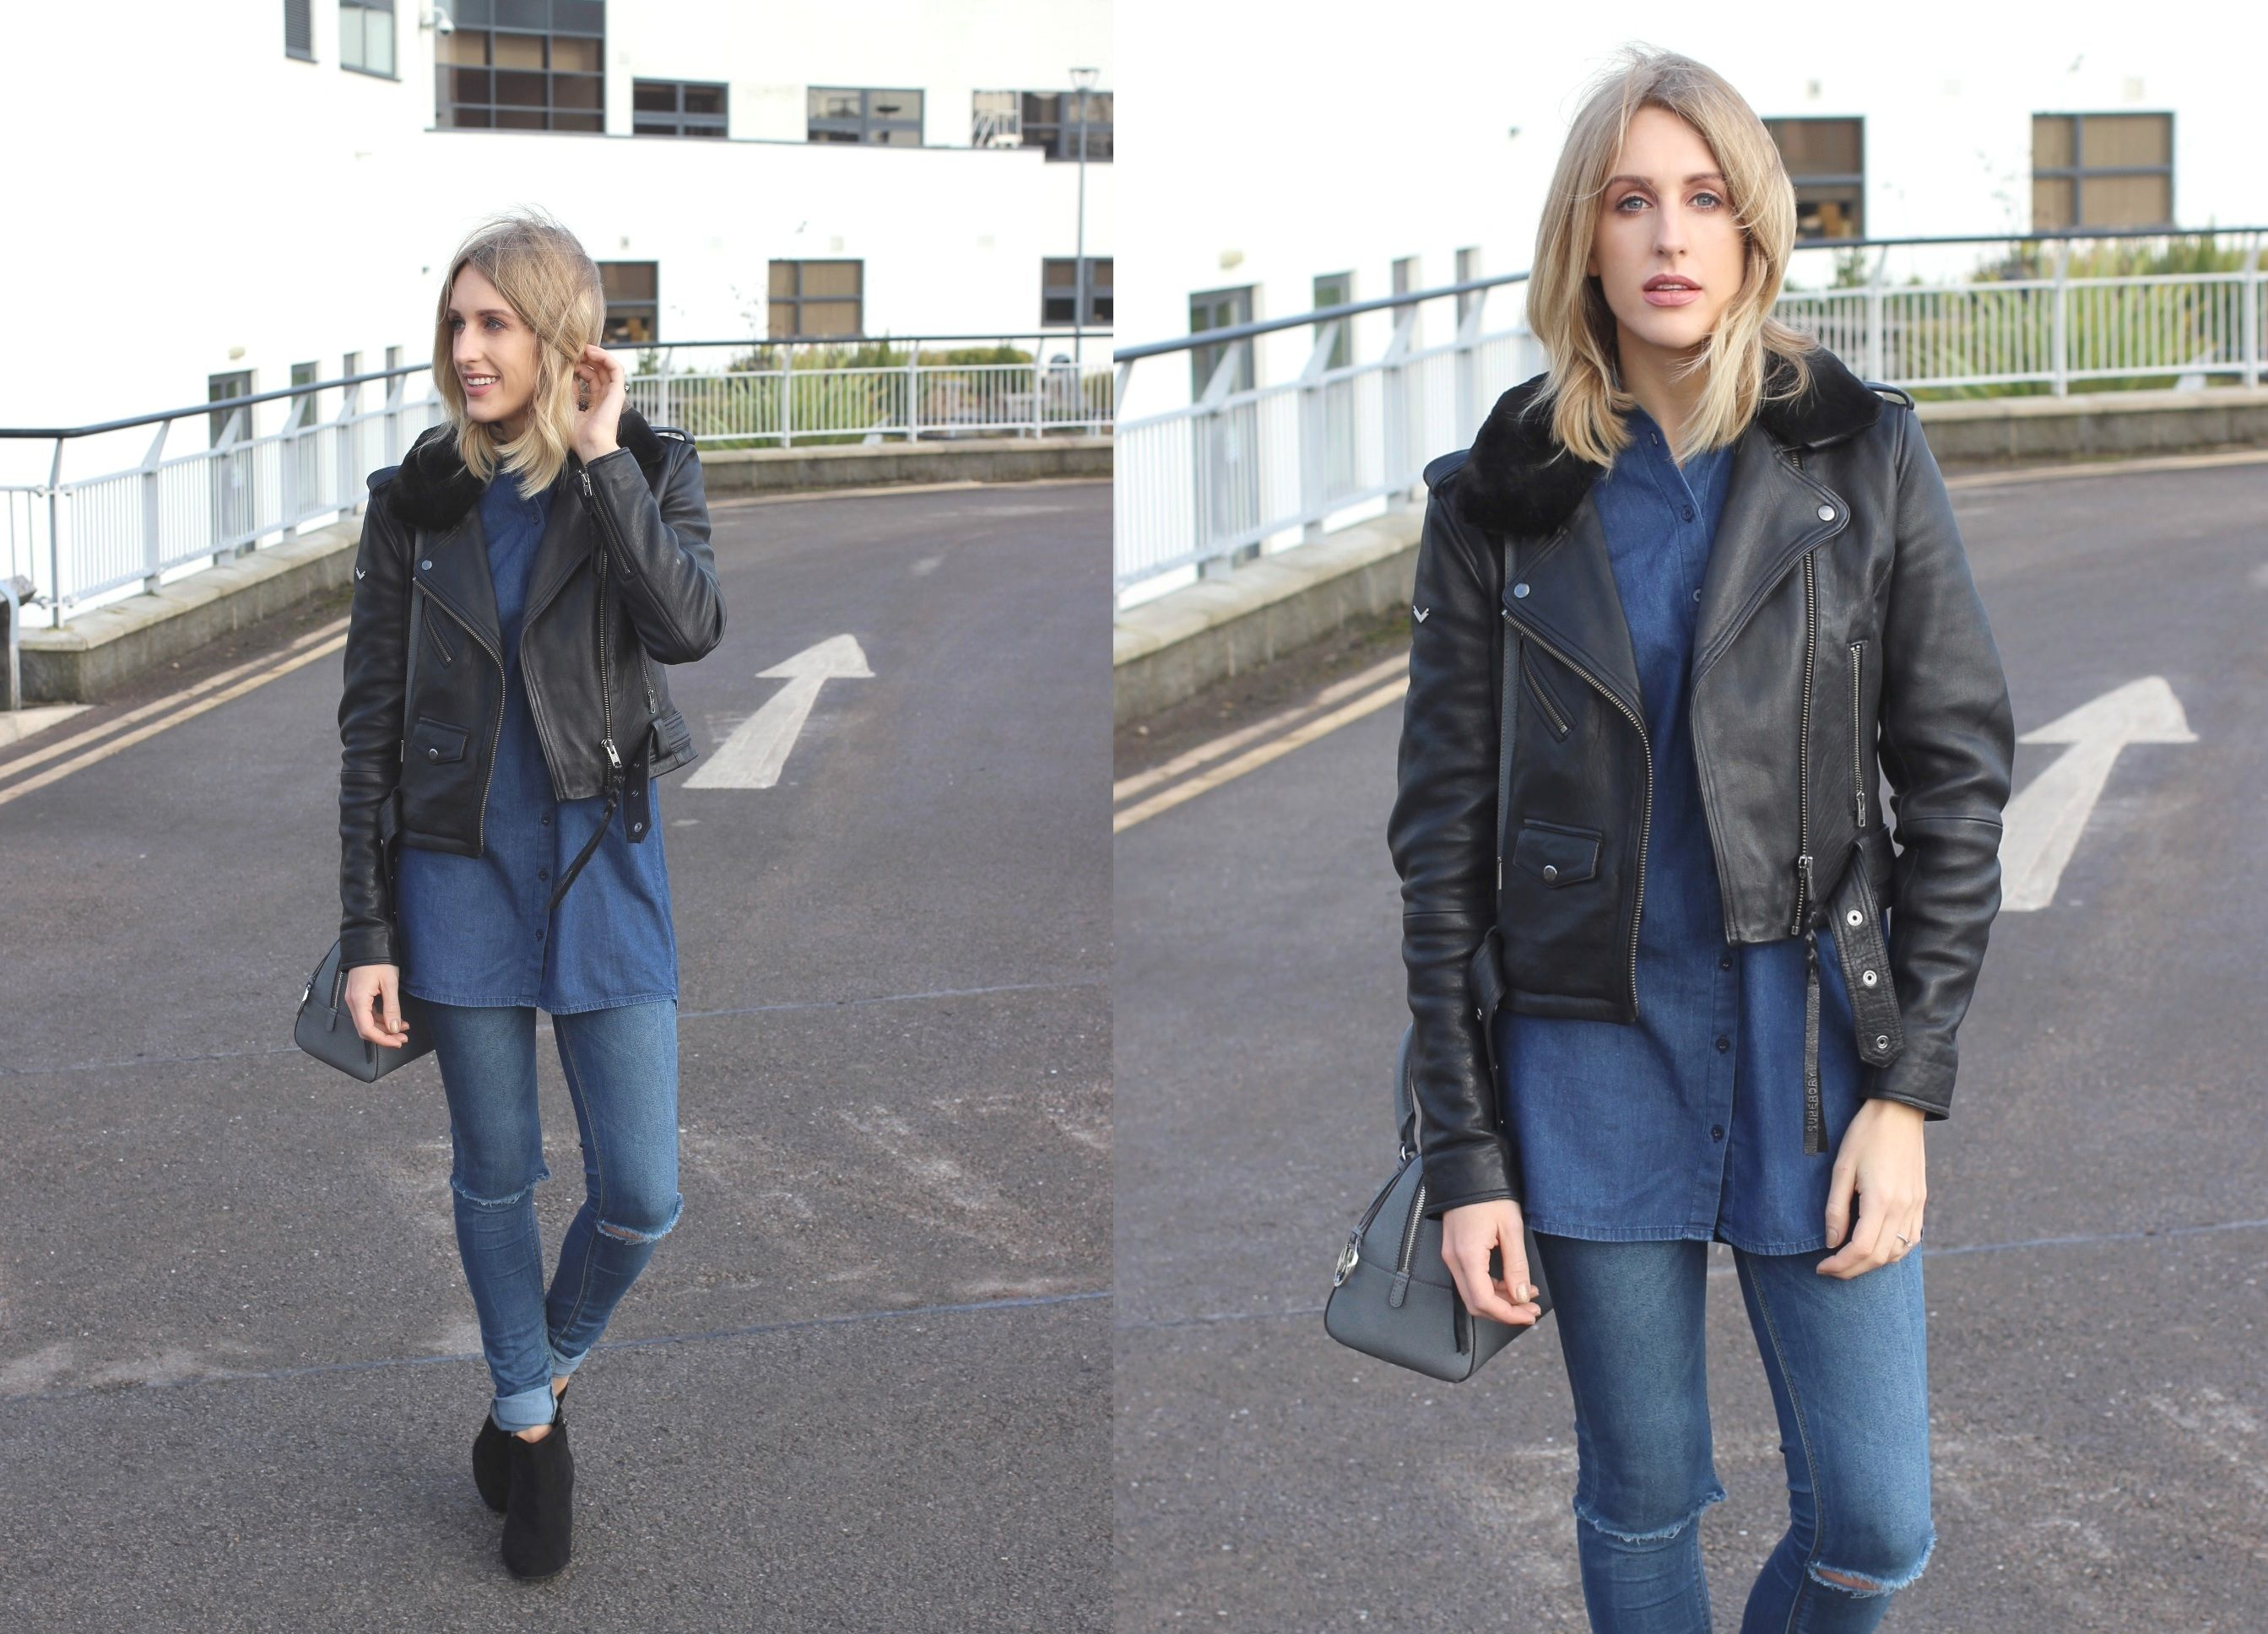 How to wear double denim #fashion #style #blog #streetstyle